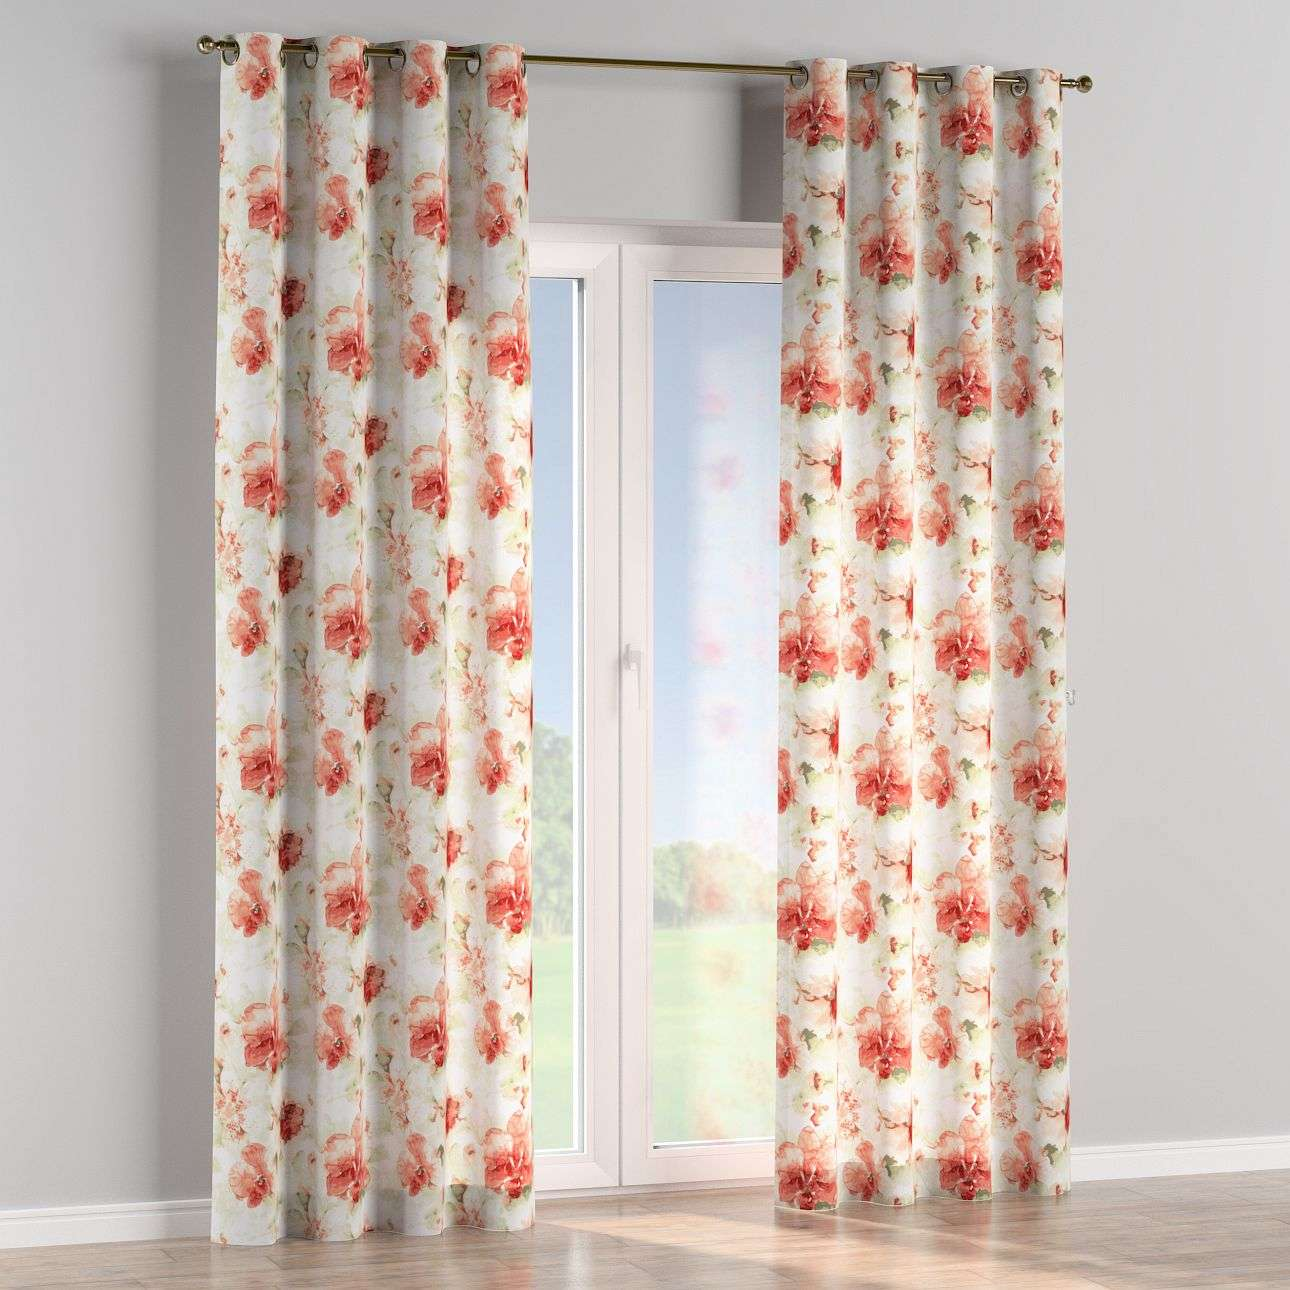 Eyelet curtains 130 × 260 cm (51 × 102 inch) in collection Acapulco, fabric: 141-34